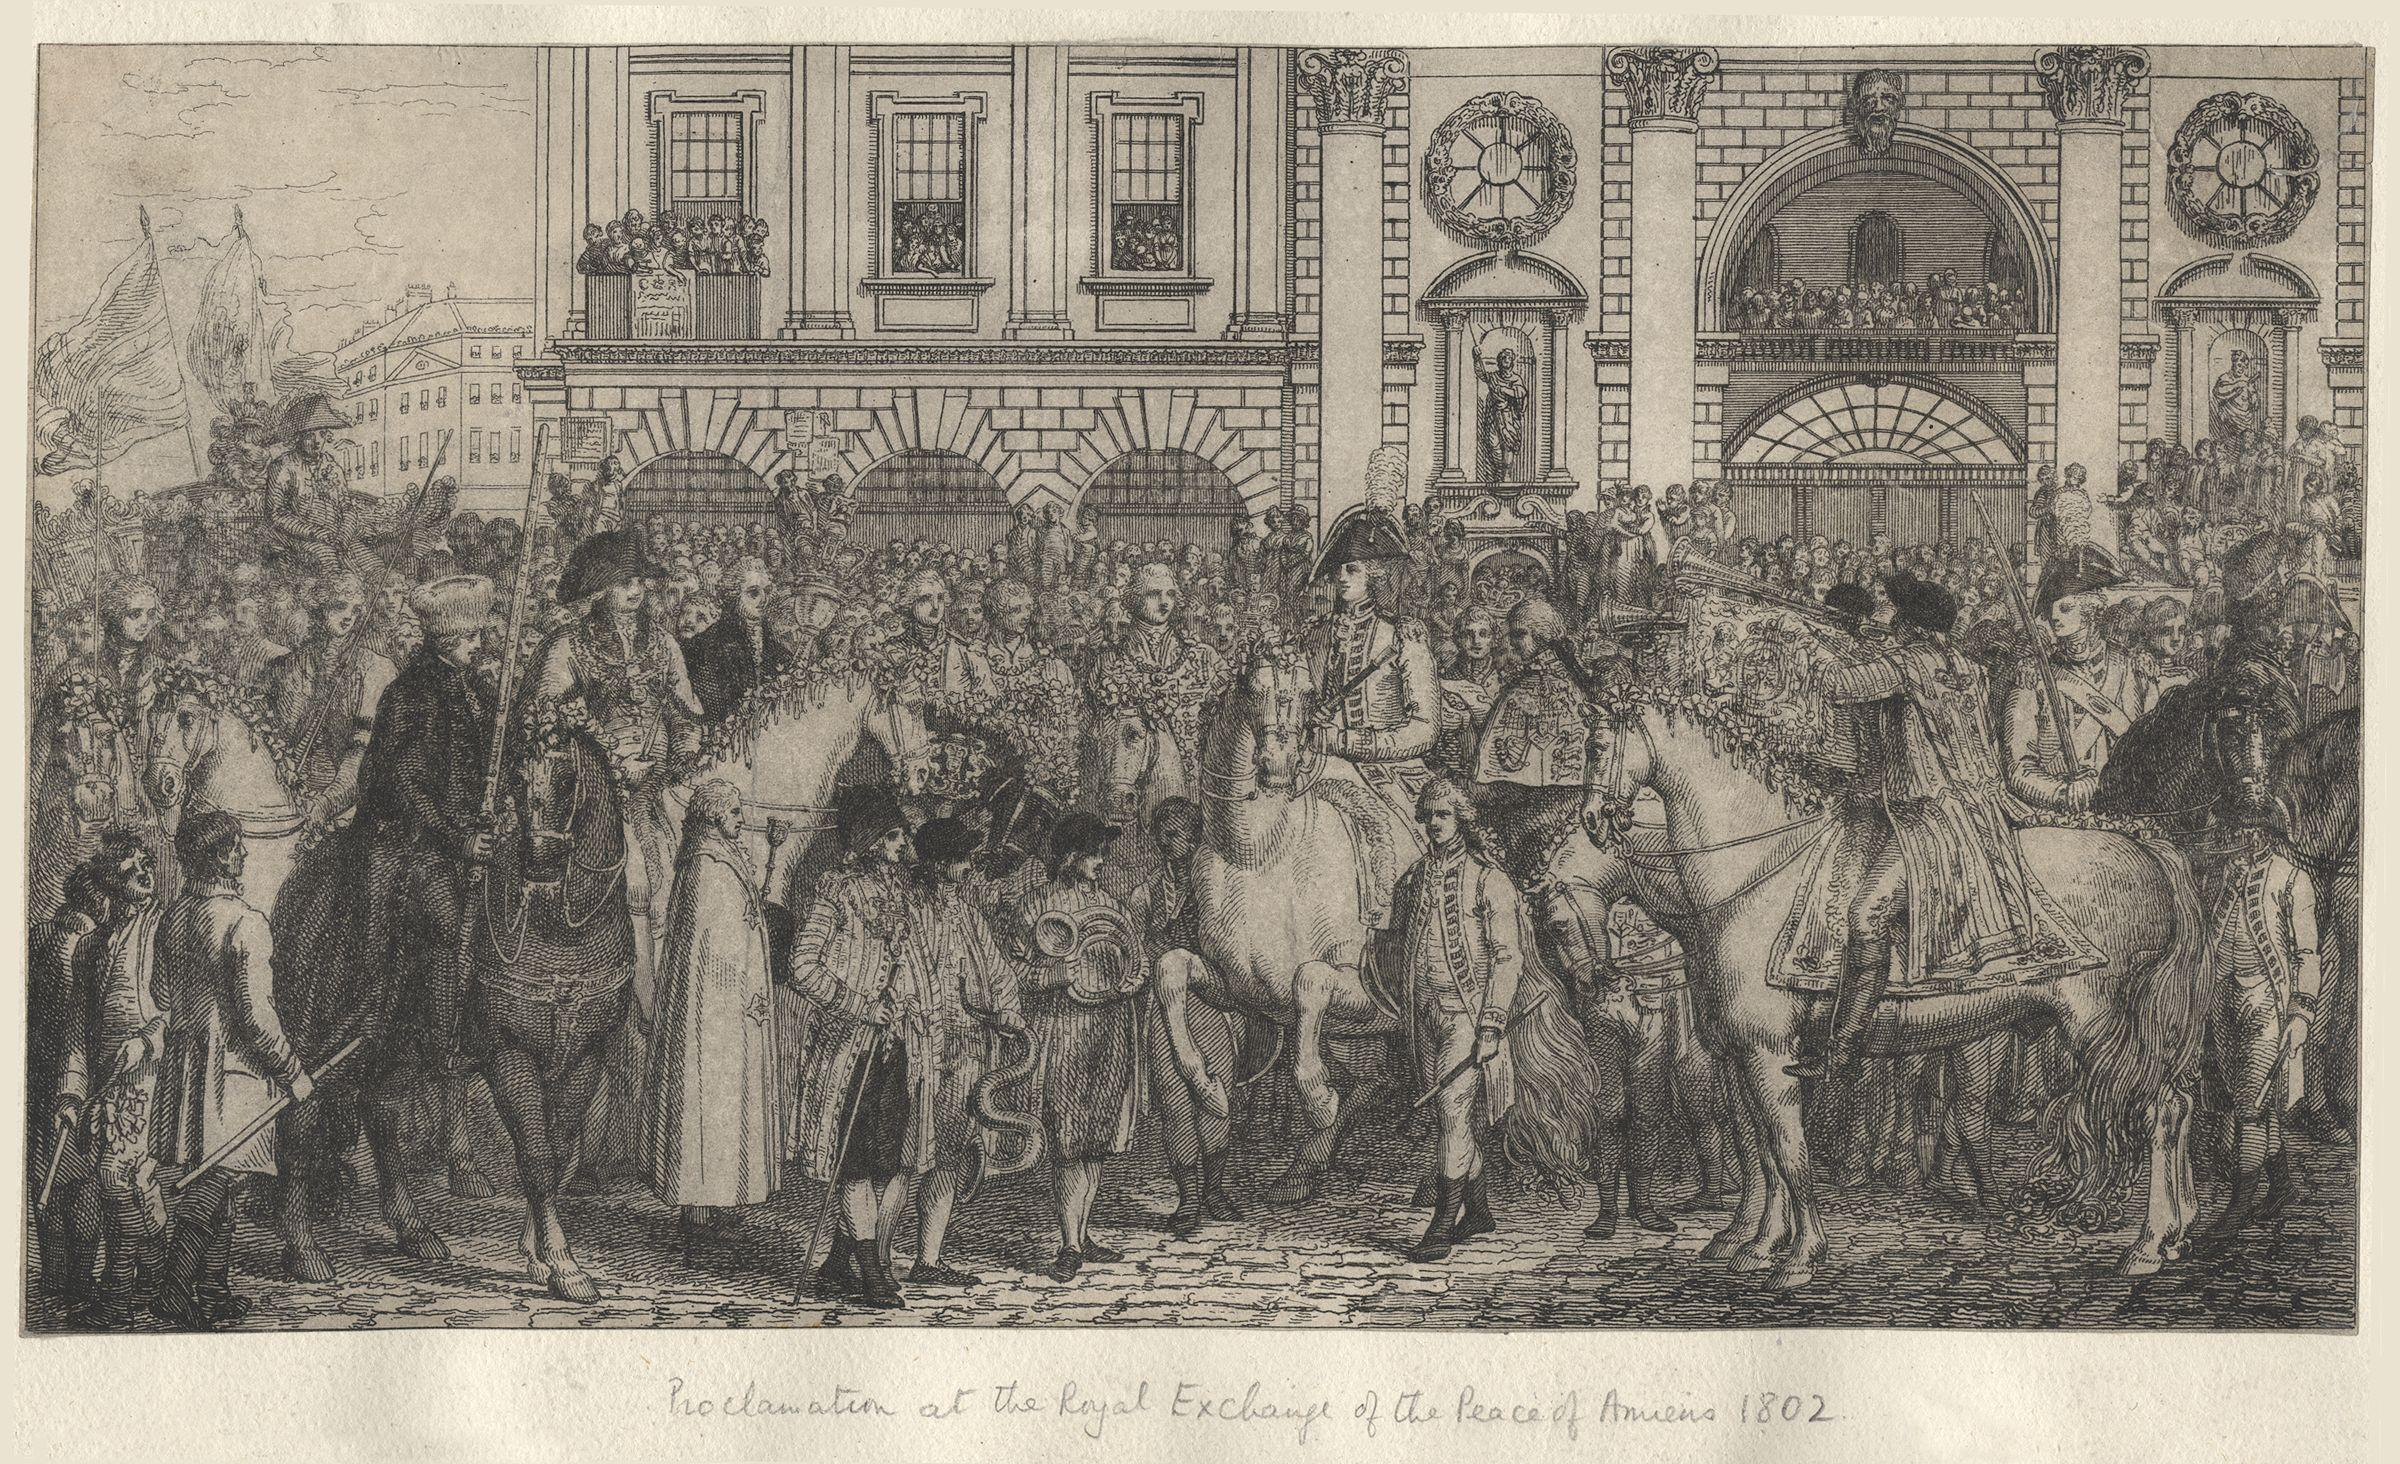 File:Proclamation at the Royal Exchange of the Peace of Amiens, 1802 by  Peltro William Tomkins.jpg